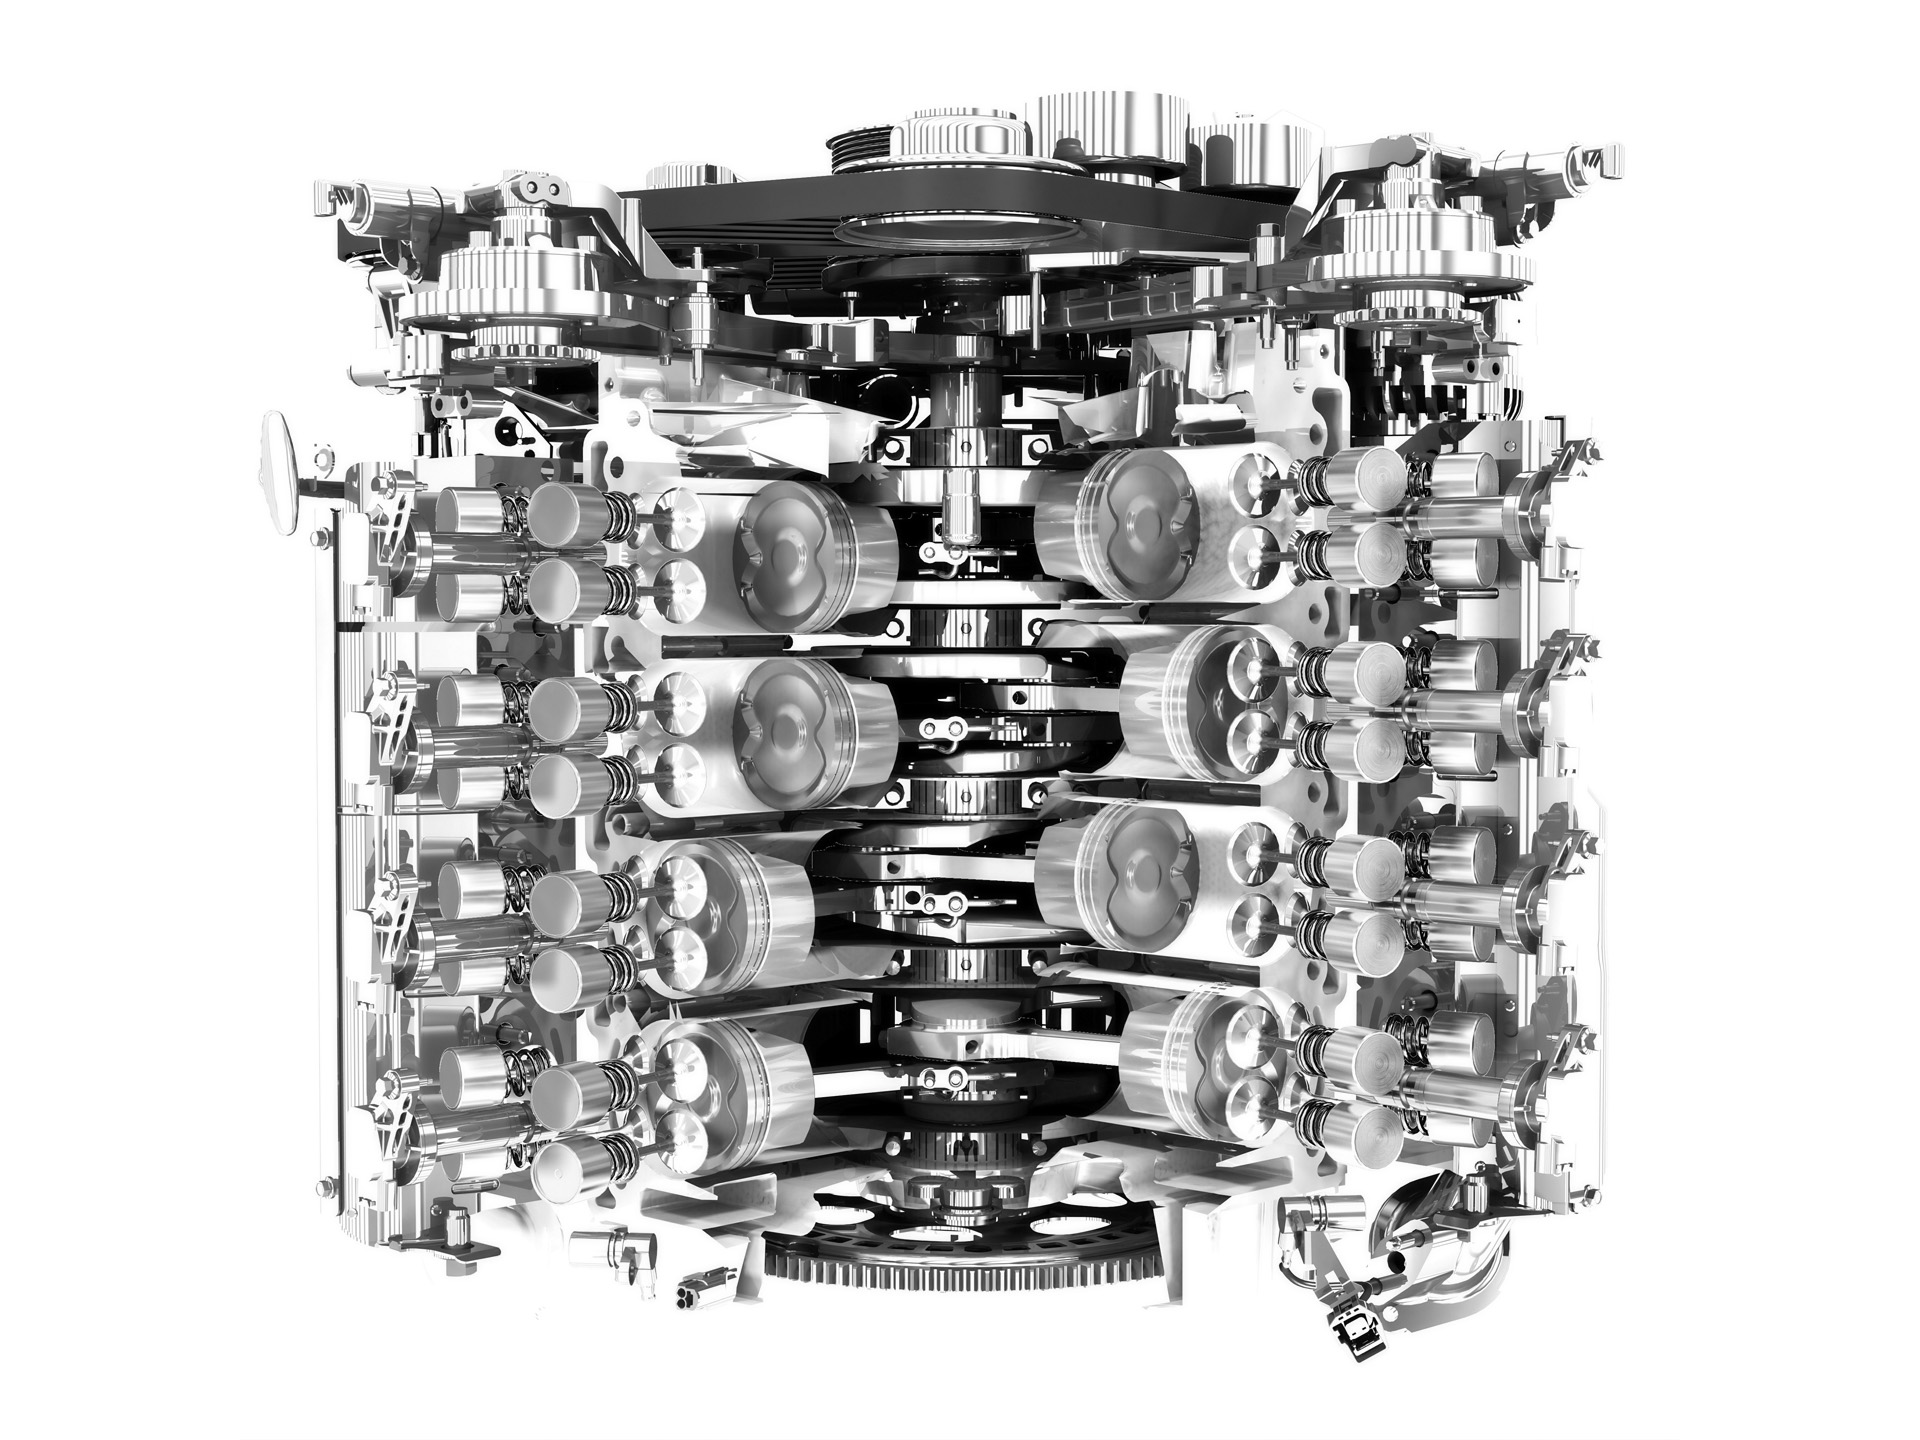 Sample P2619 Engine